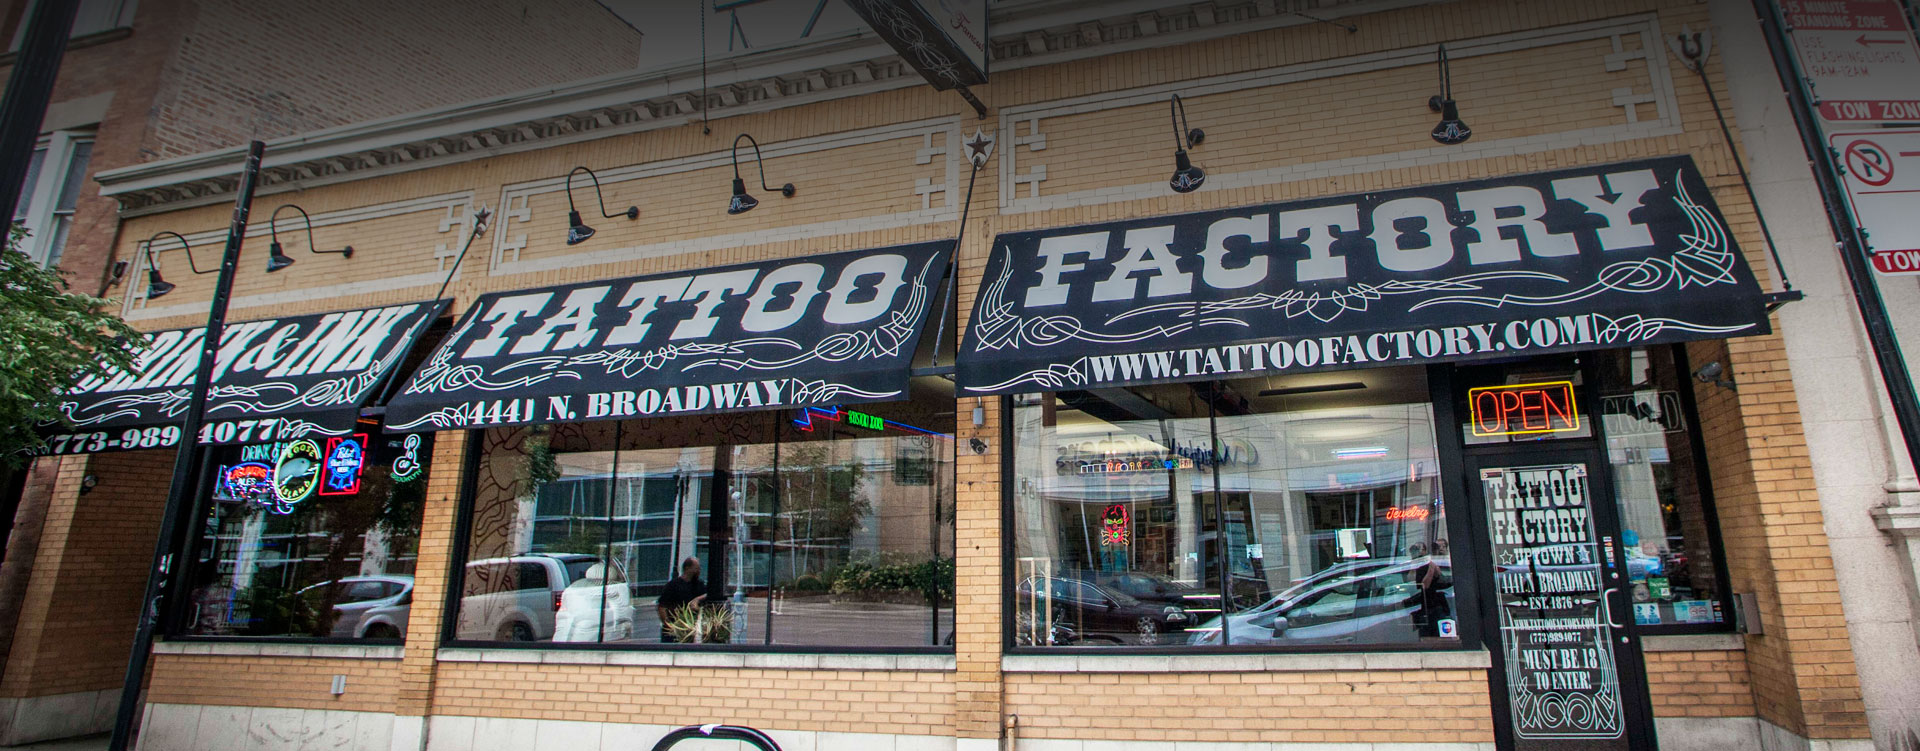 Tattoo Factory- The best in Tattos and Piercings | Tattoo Factory